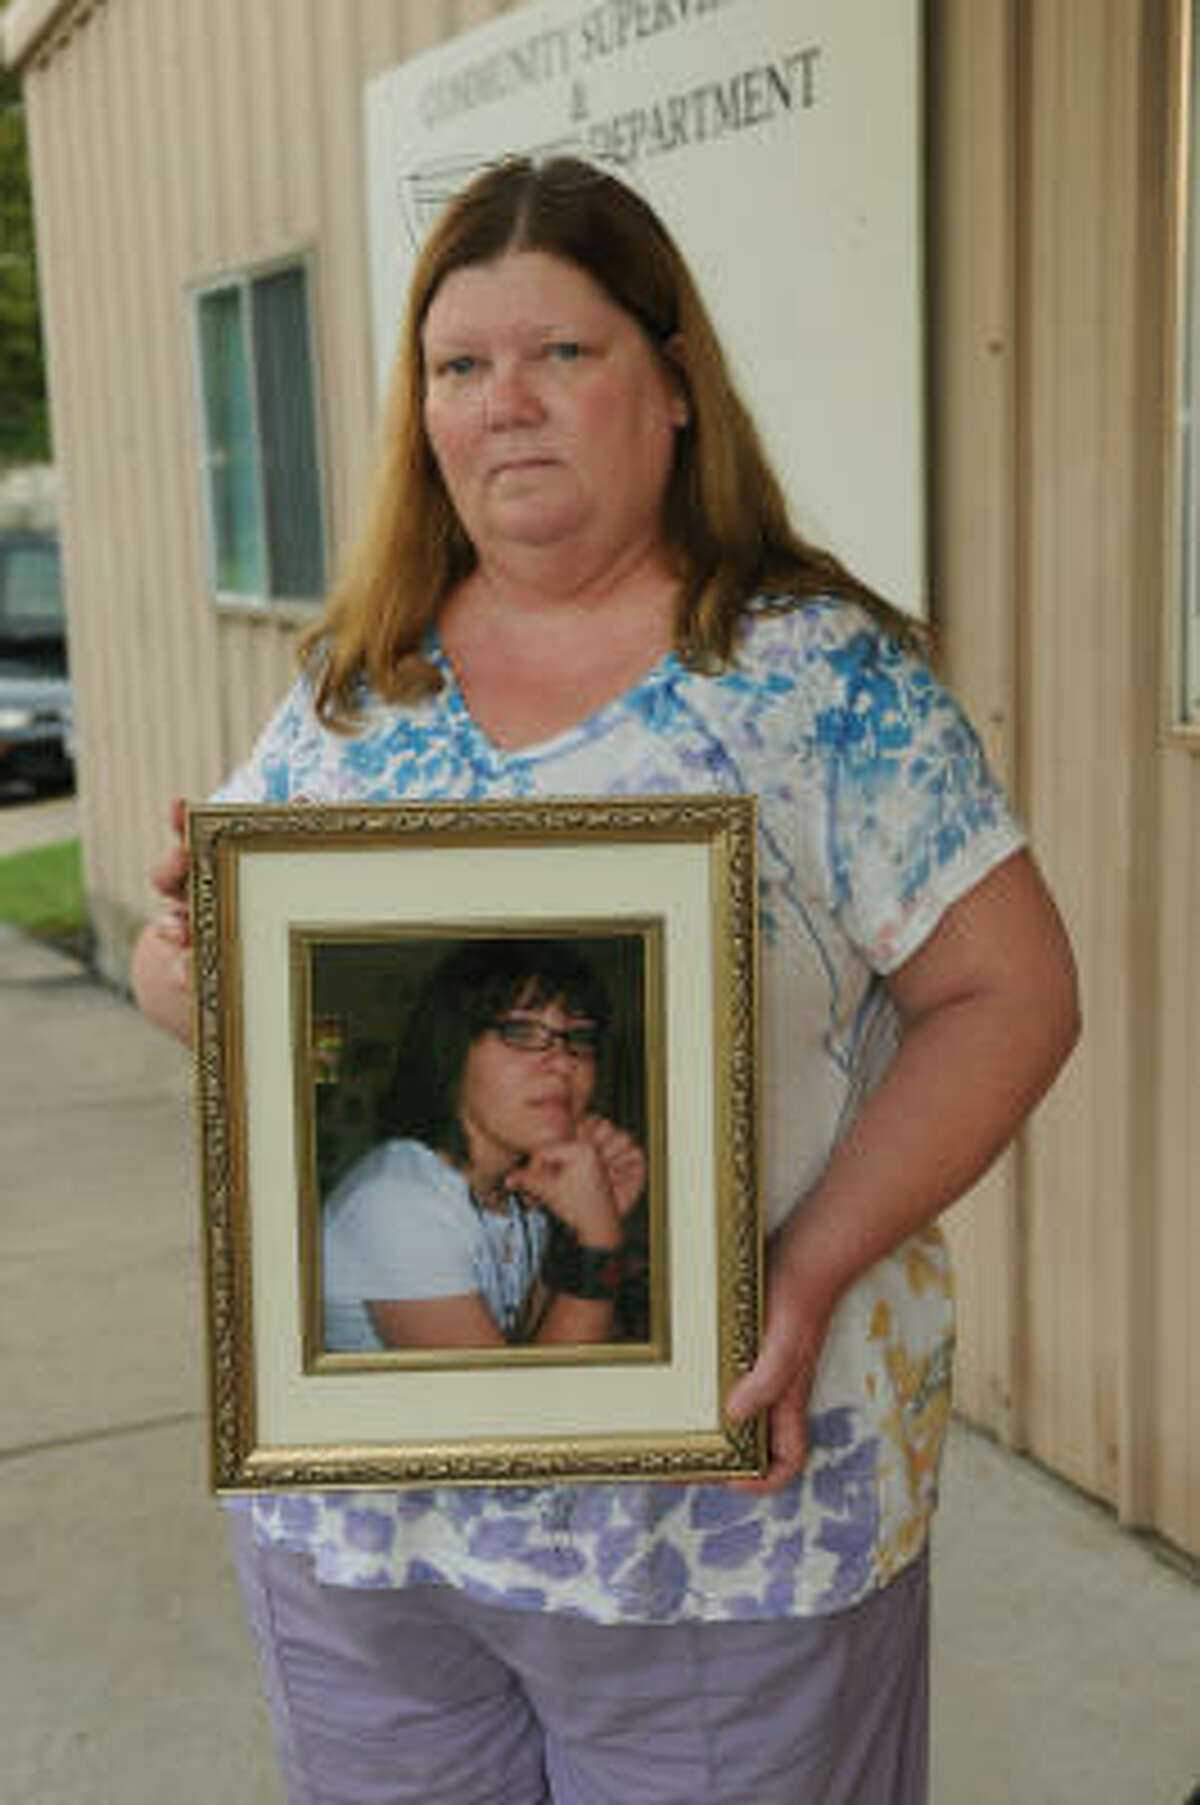 Valoree Lalime lost her daughter Nicole Lynn Lalime, 13, in 2008 when an impaired driver ran over her as she exited her school bus in northwest Houston.